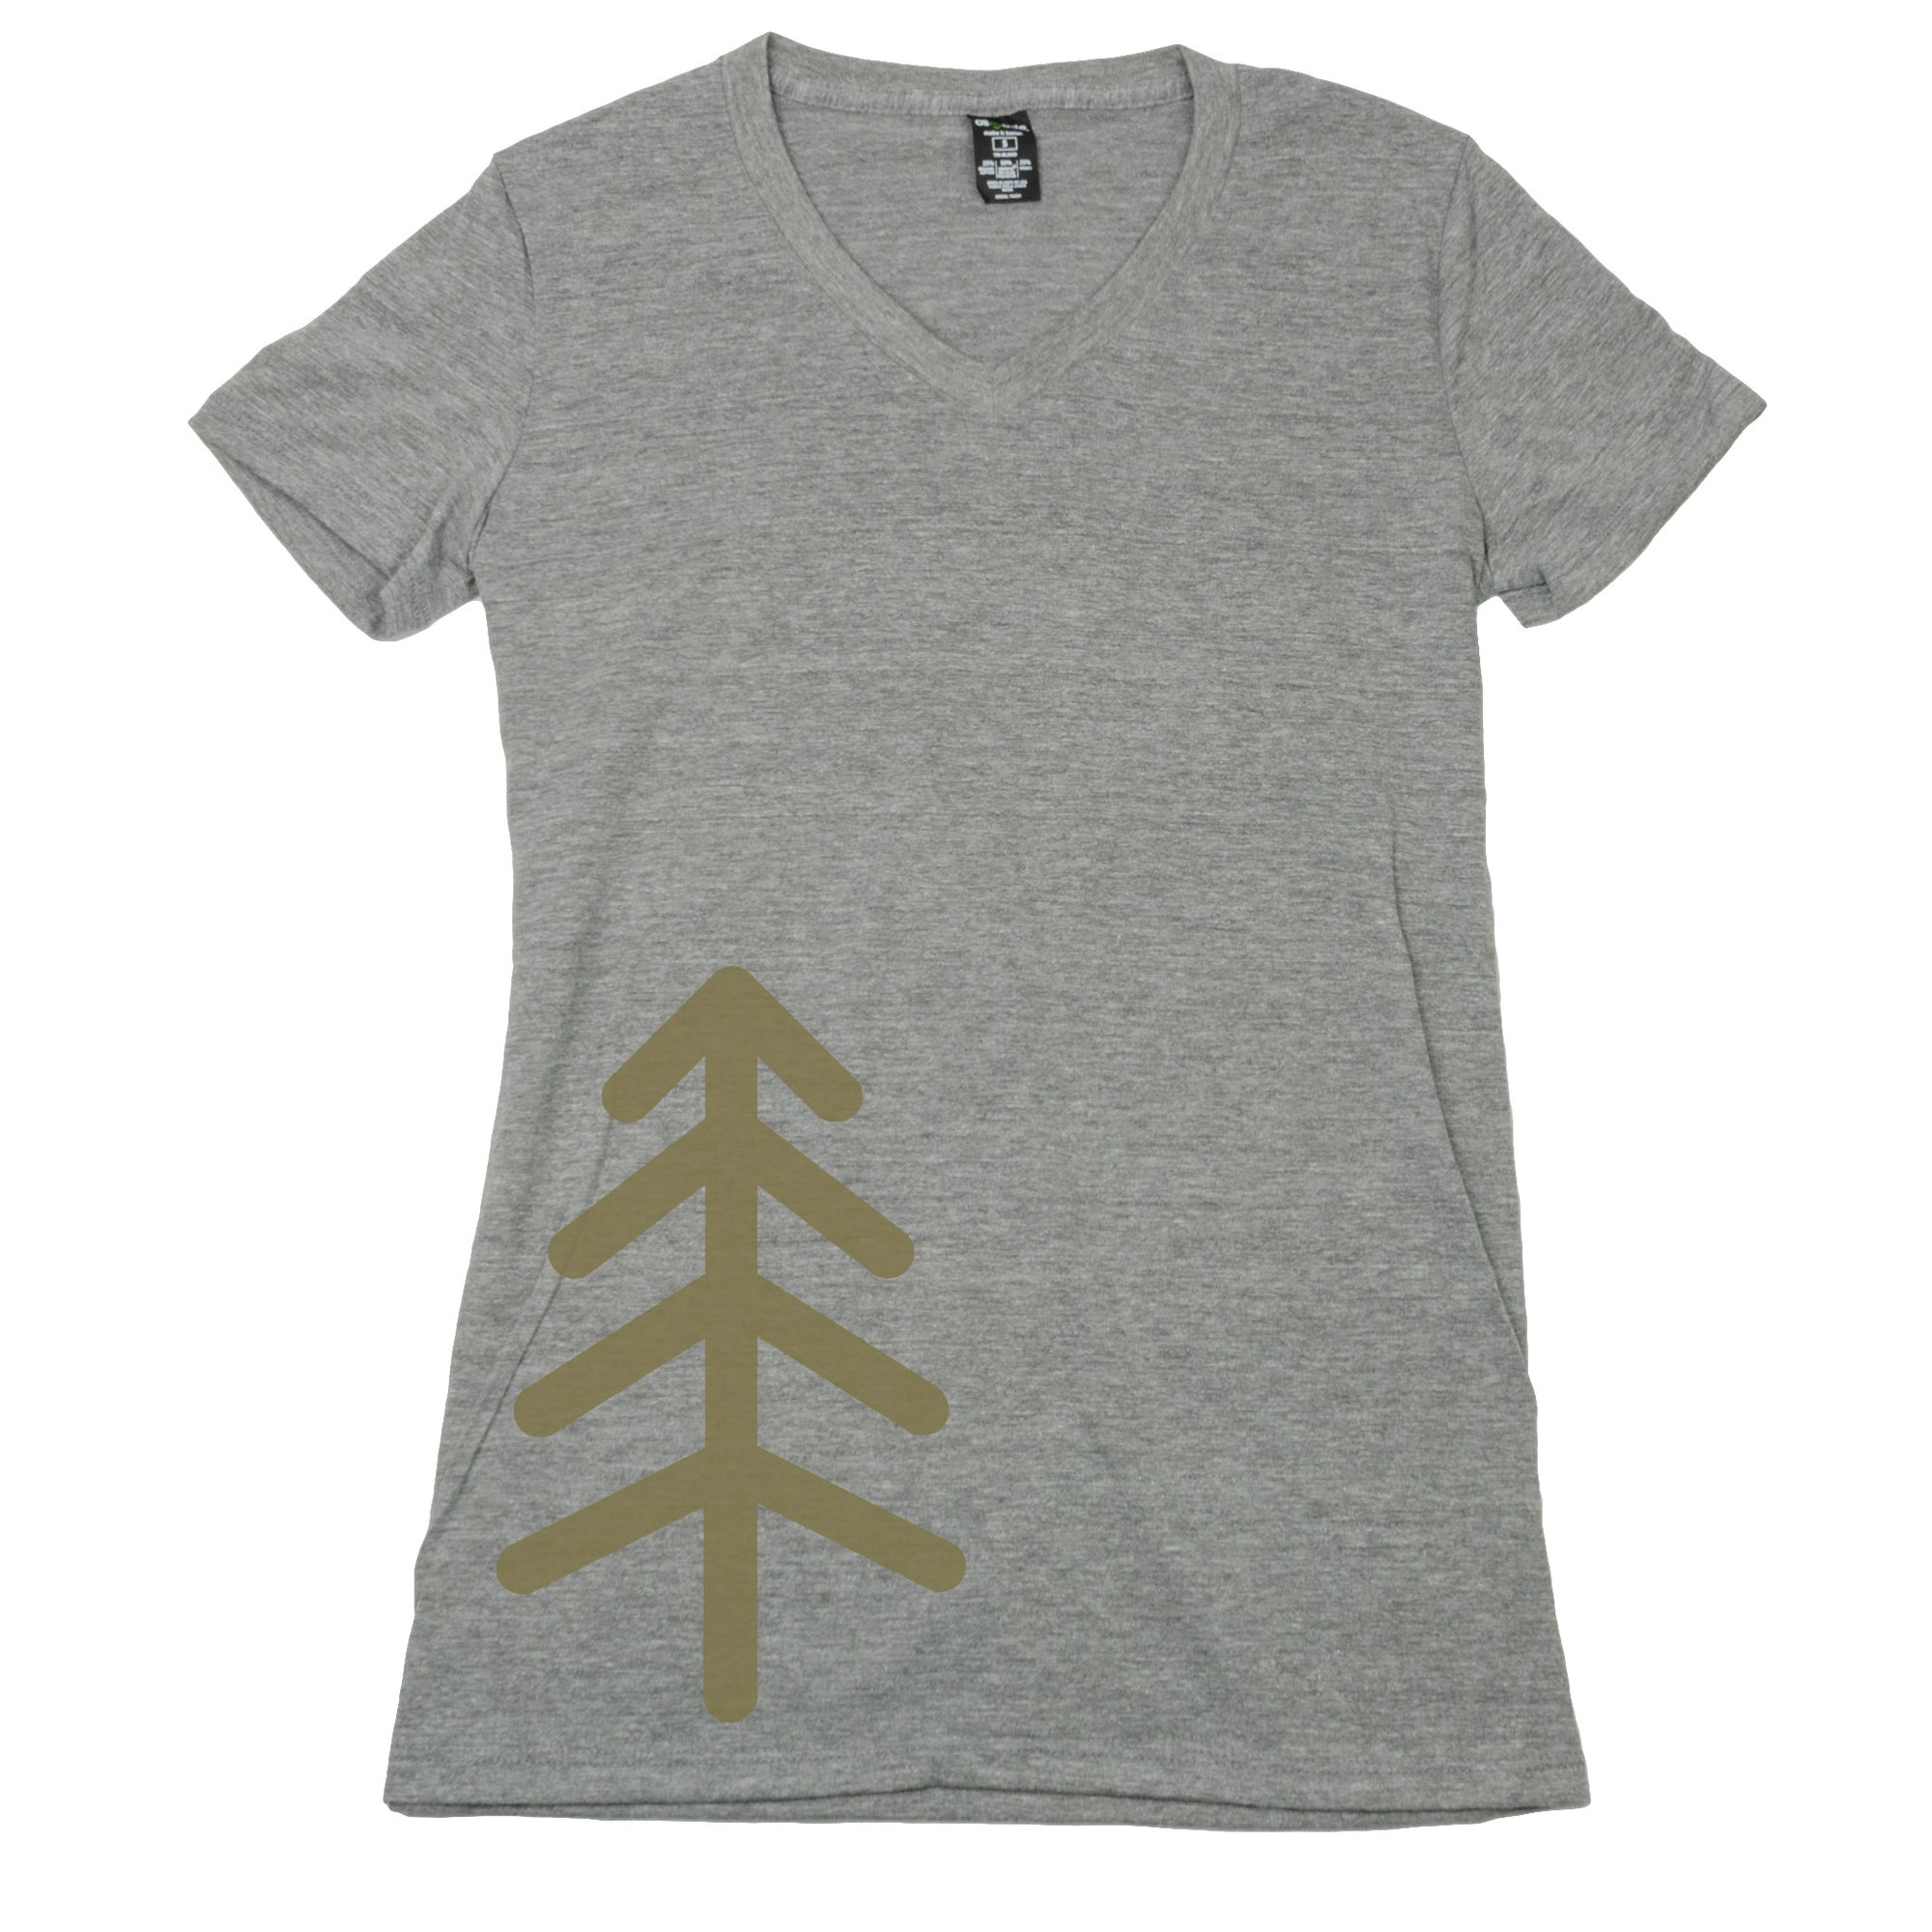 Women's Tree T-shirt